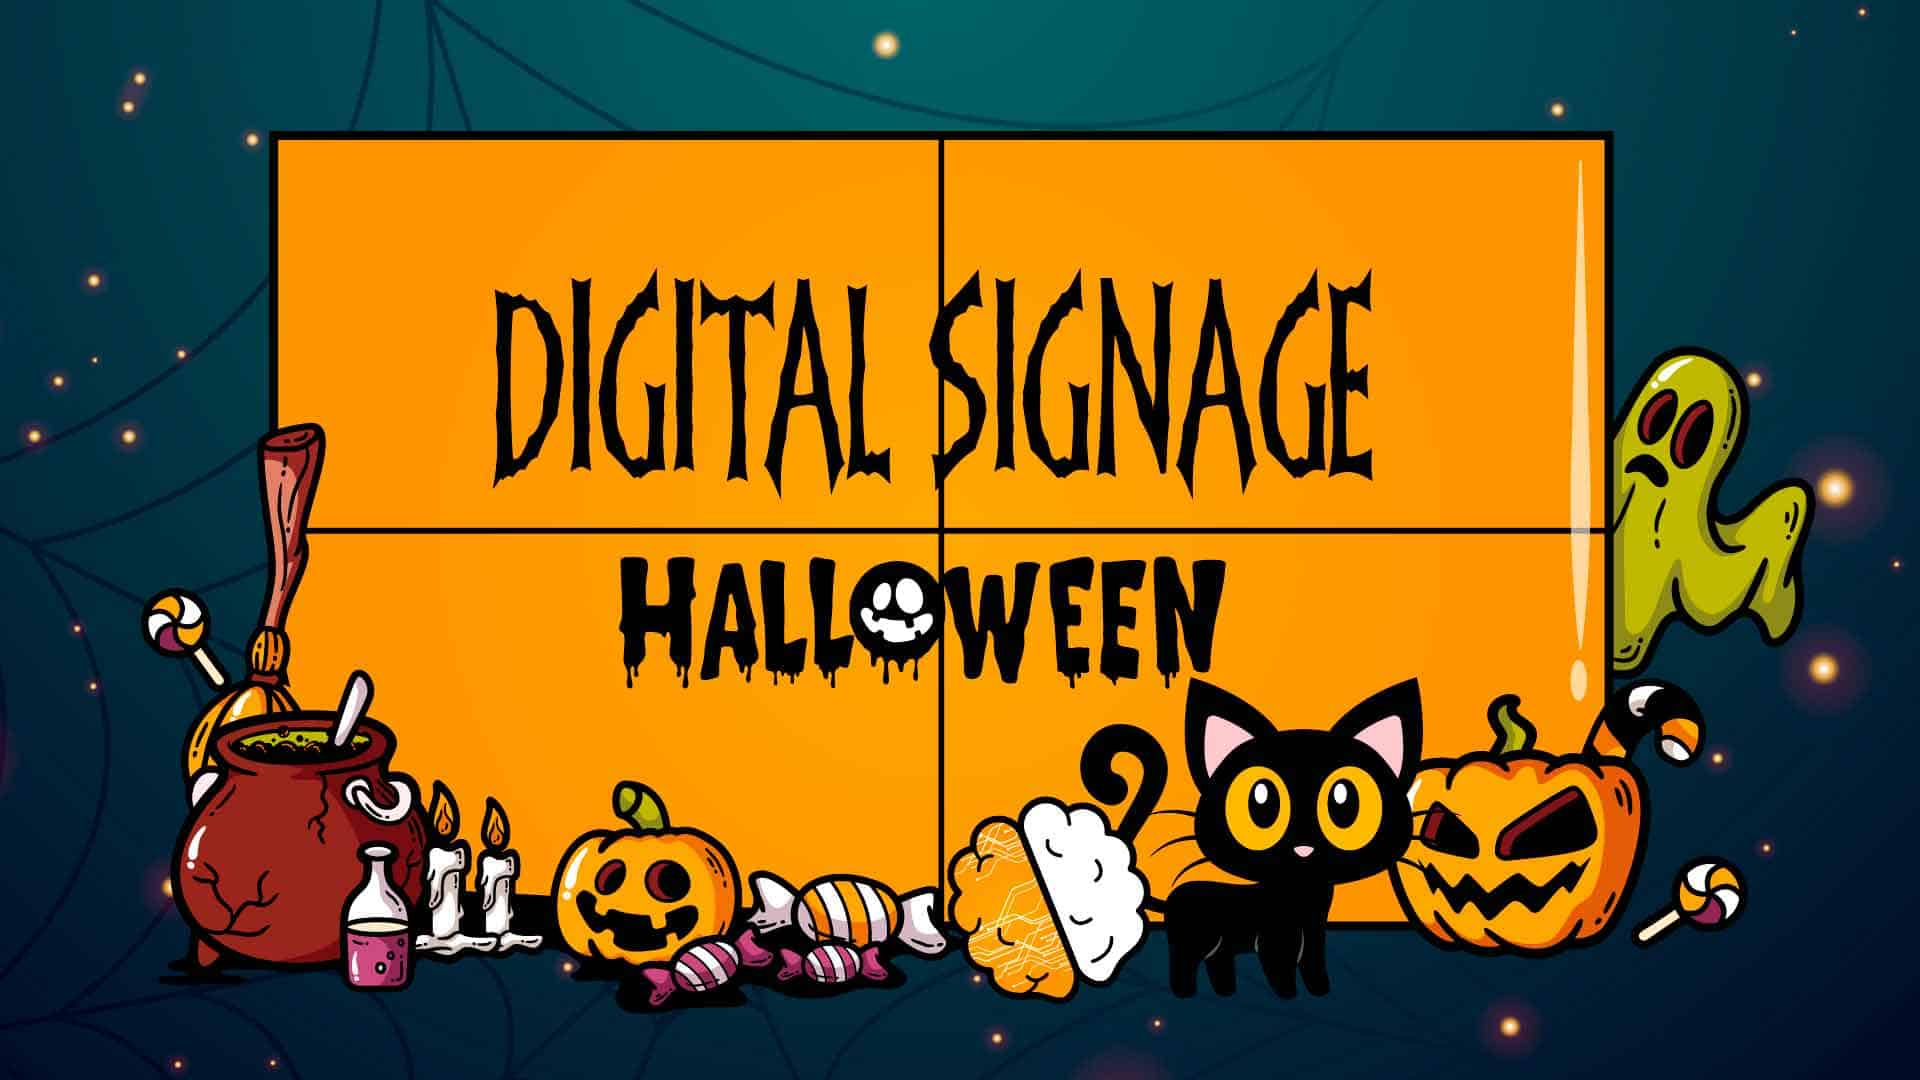 Campaña Halloween Digital Signage